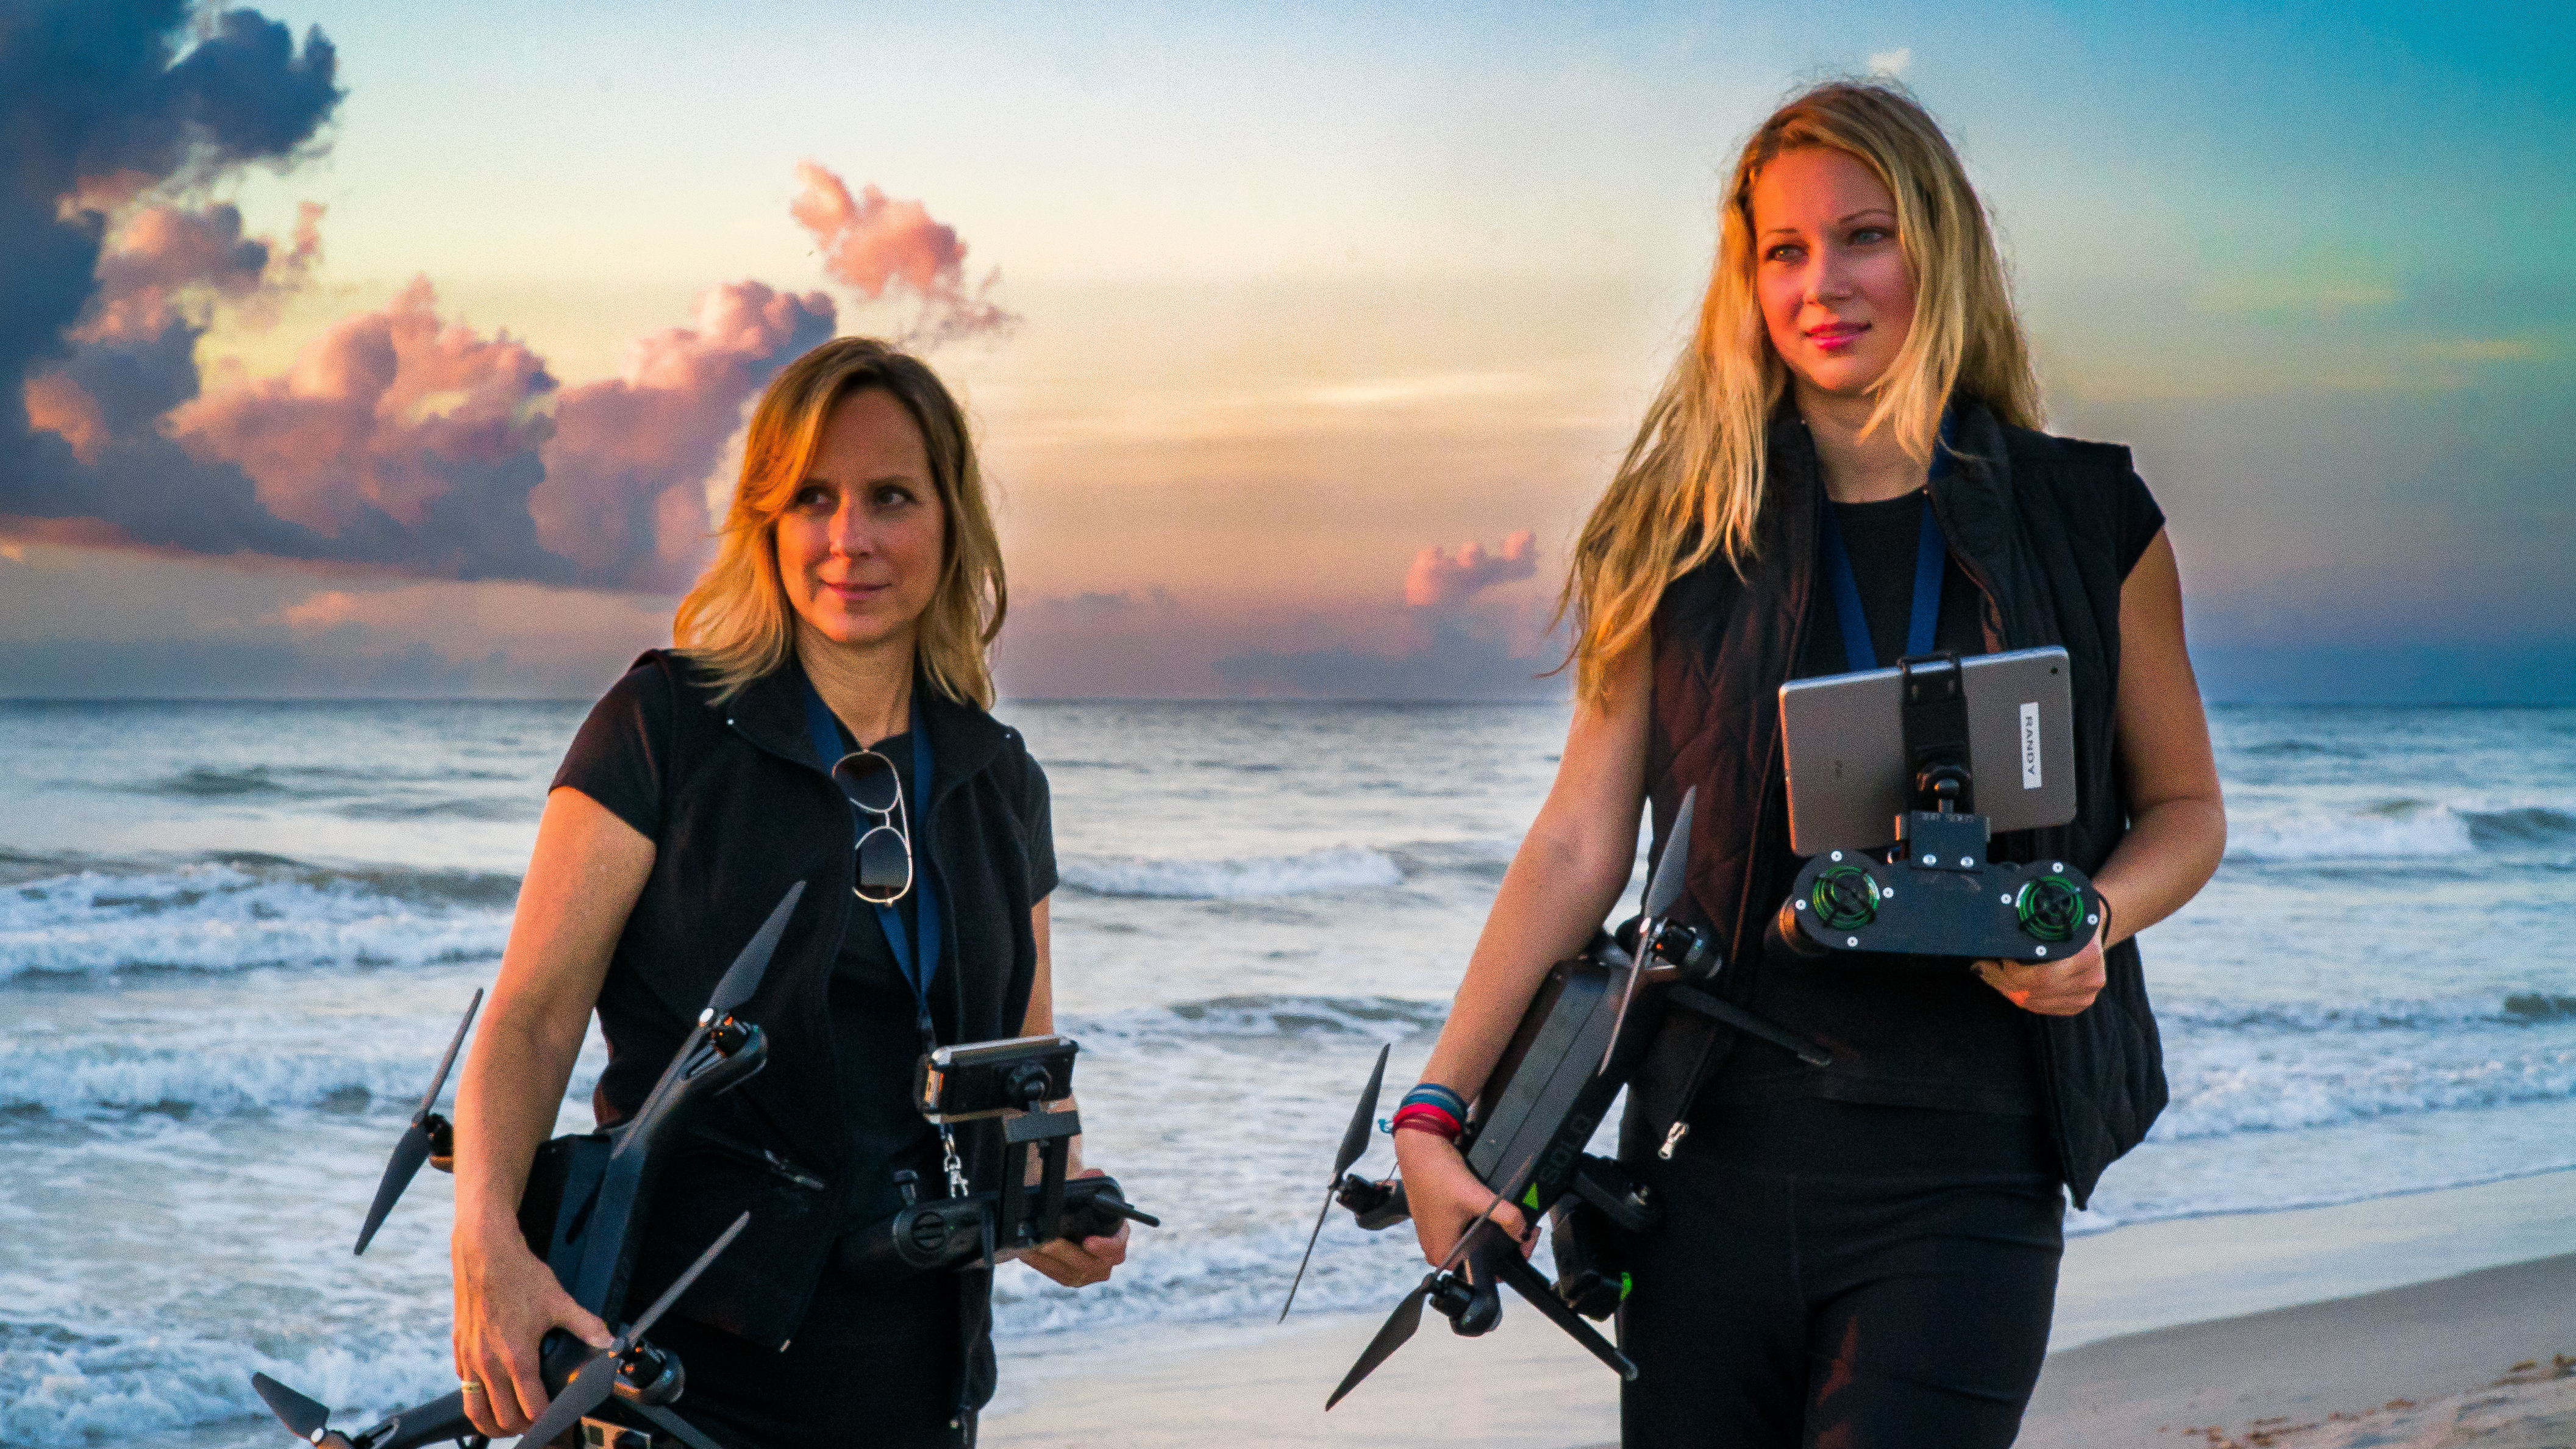 Meet 2DroneGals photographers Kim and Makalya